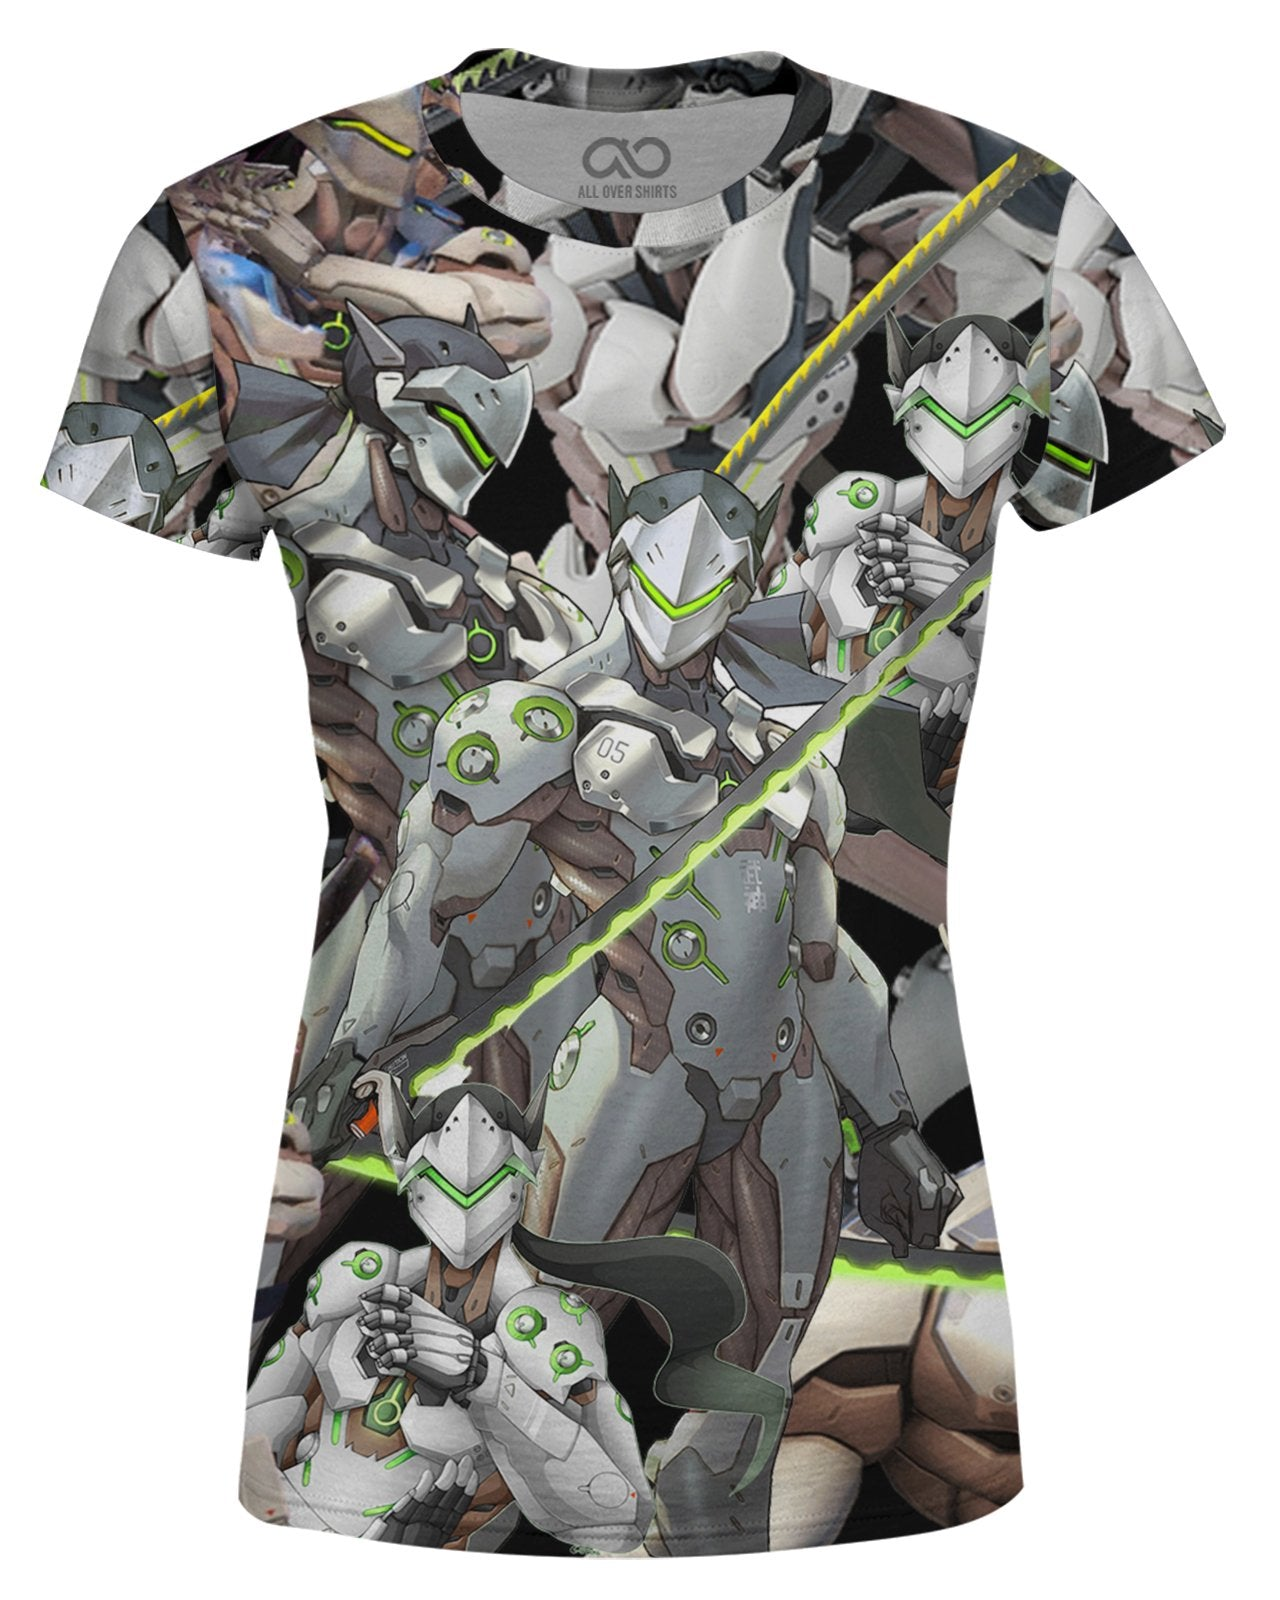 Genji Women's T-shirt